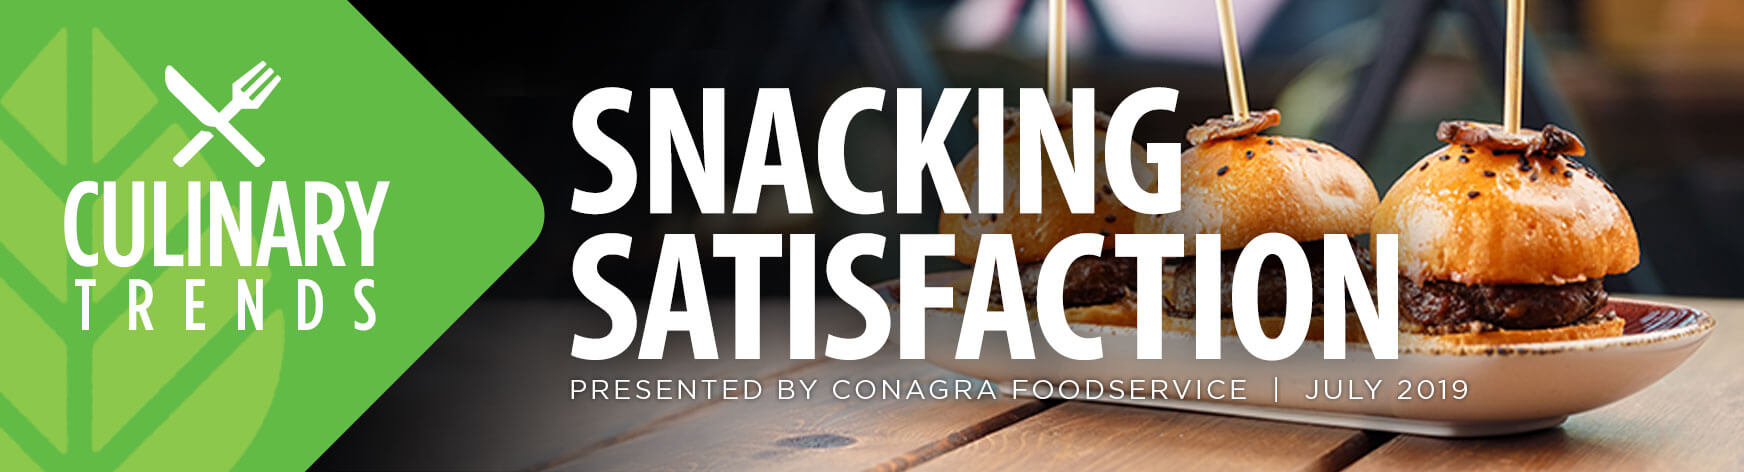 Culinary Trends: Snacking Satisfaction Presented by Conagra Foodservice